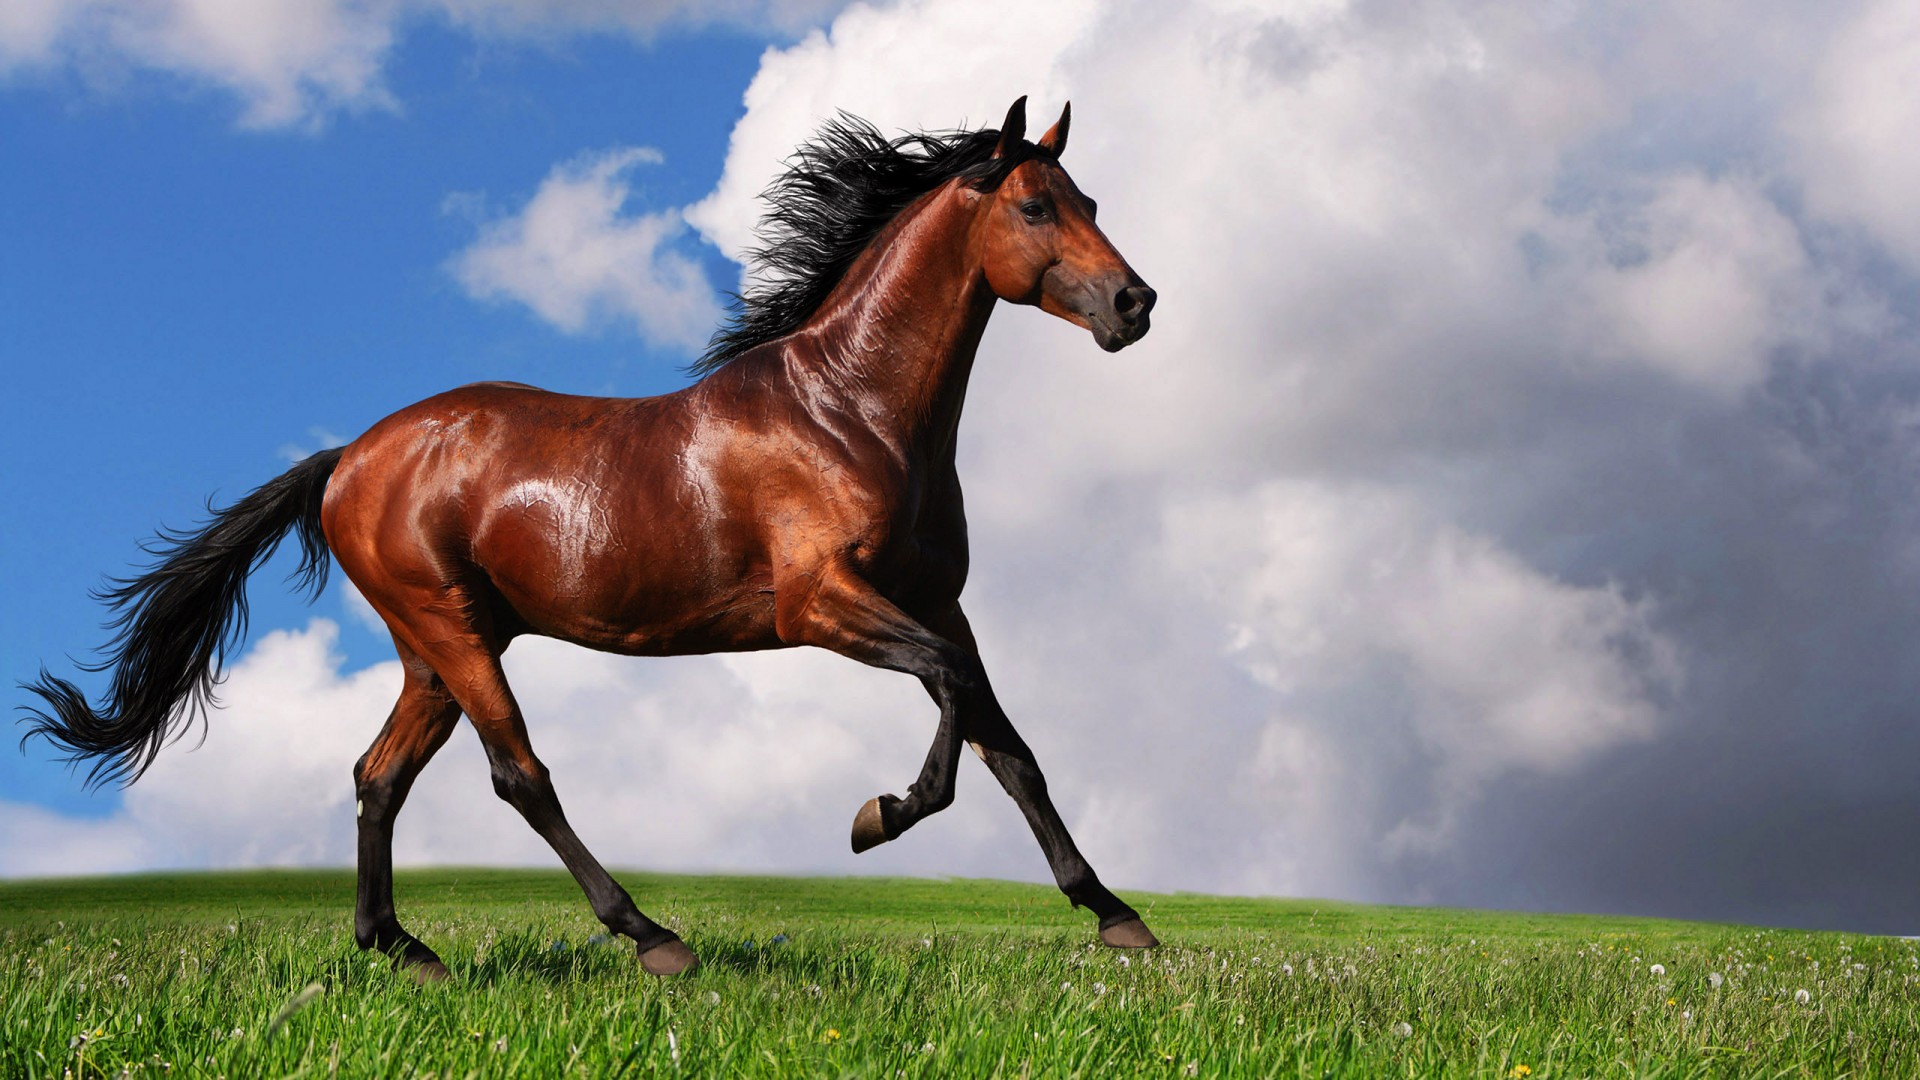 Free Brown Horse Wallpaper 1920x1080 13081